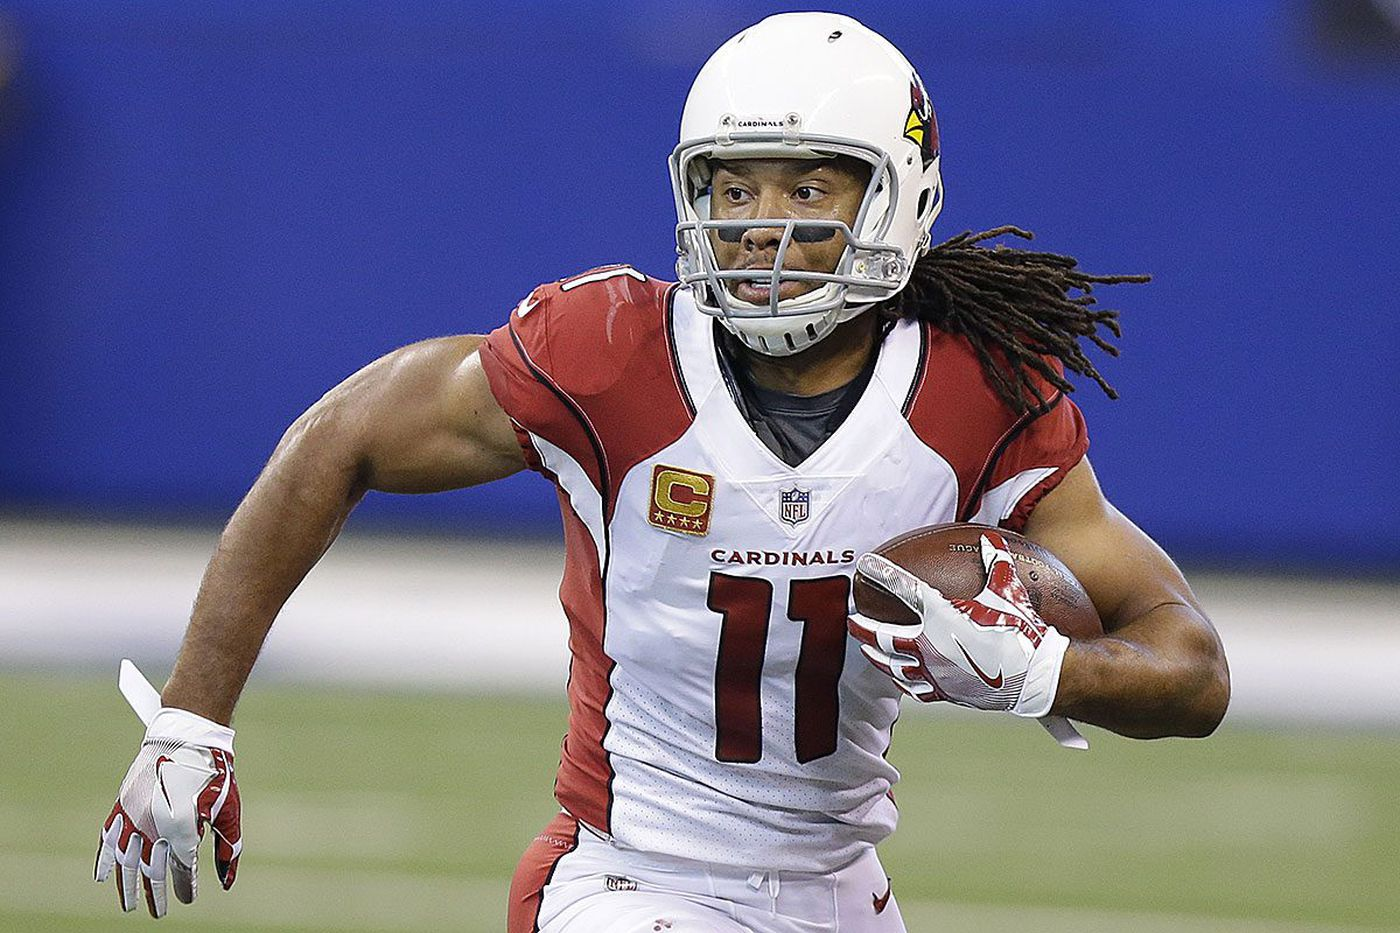 Eagles' Malcolm Jenkins admires Larry Fitzgerald's attention to detail